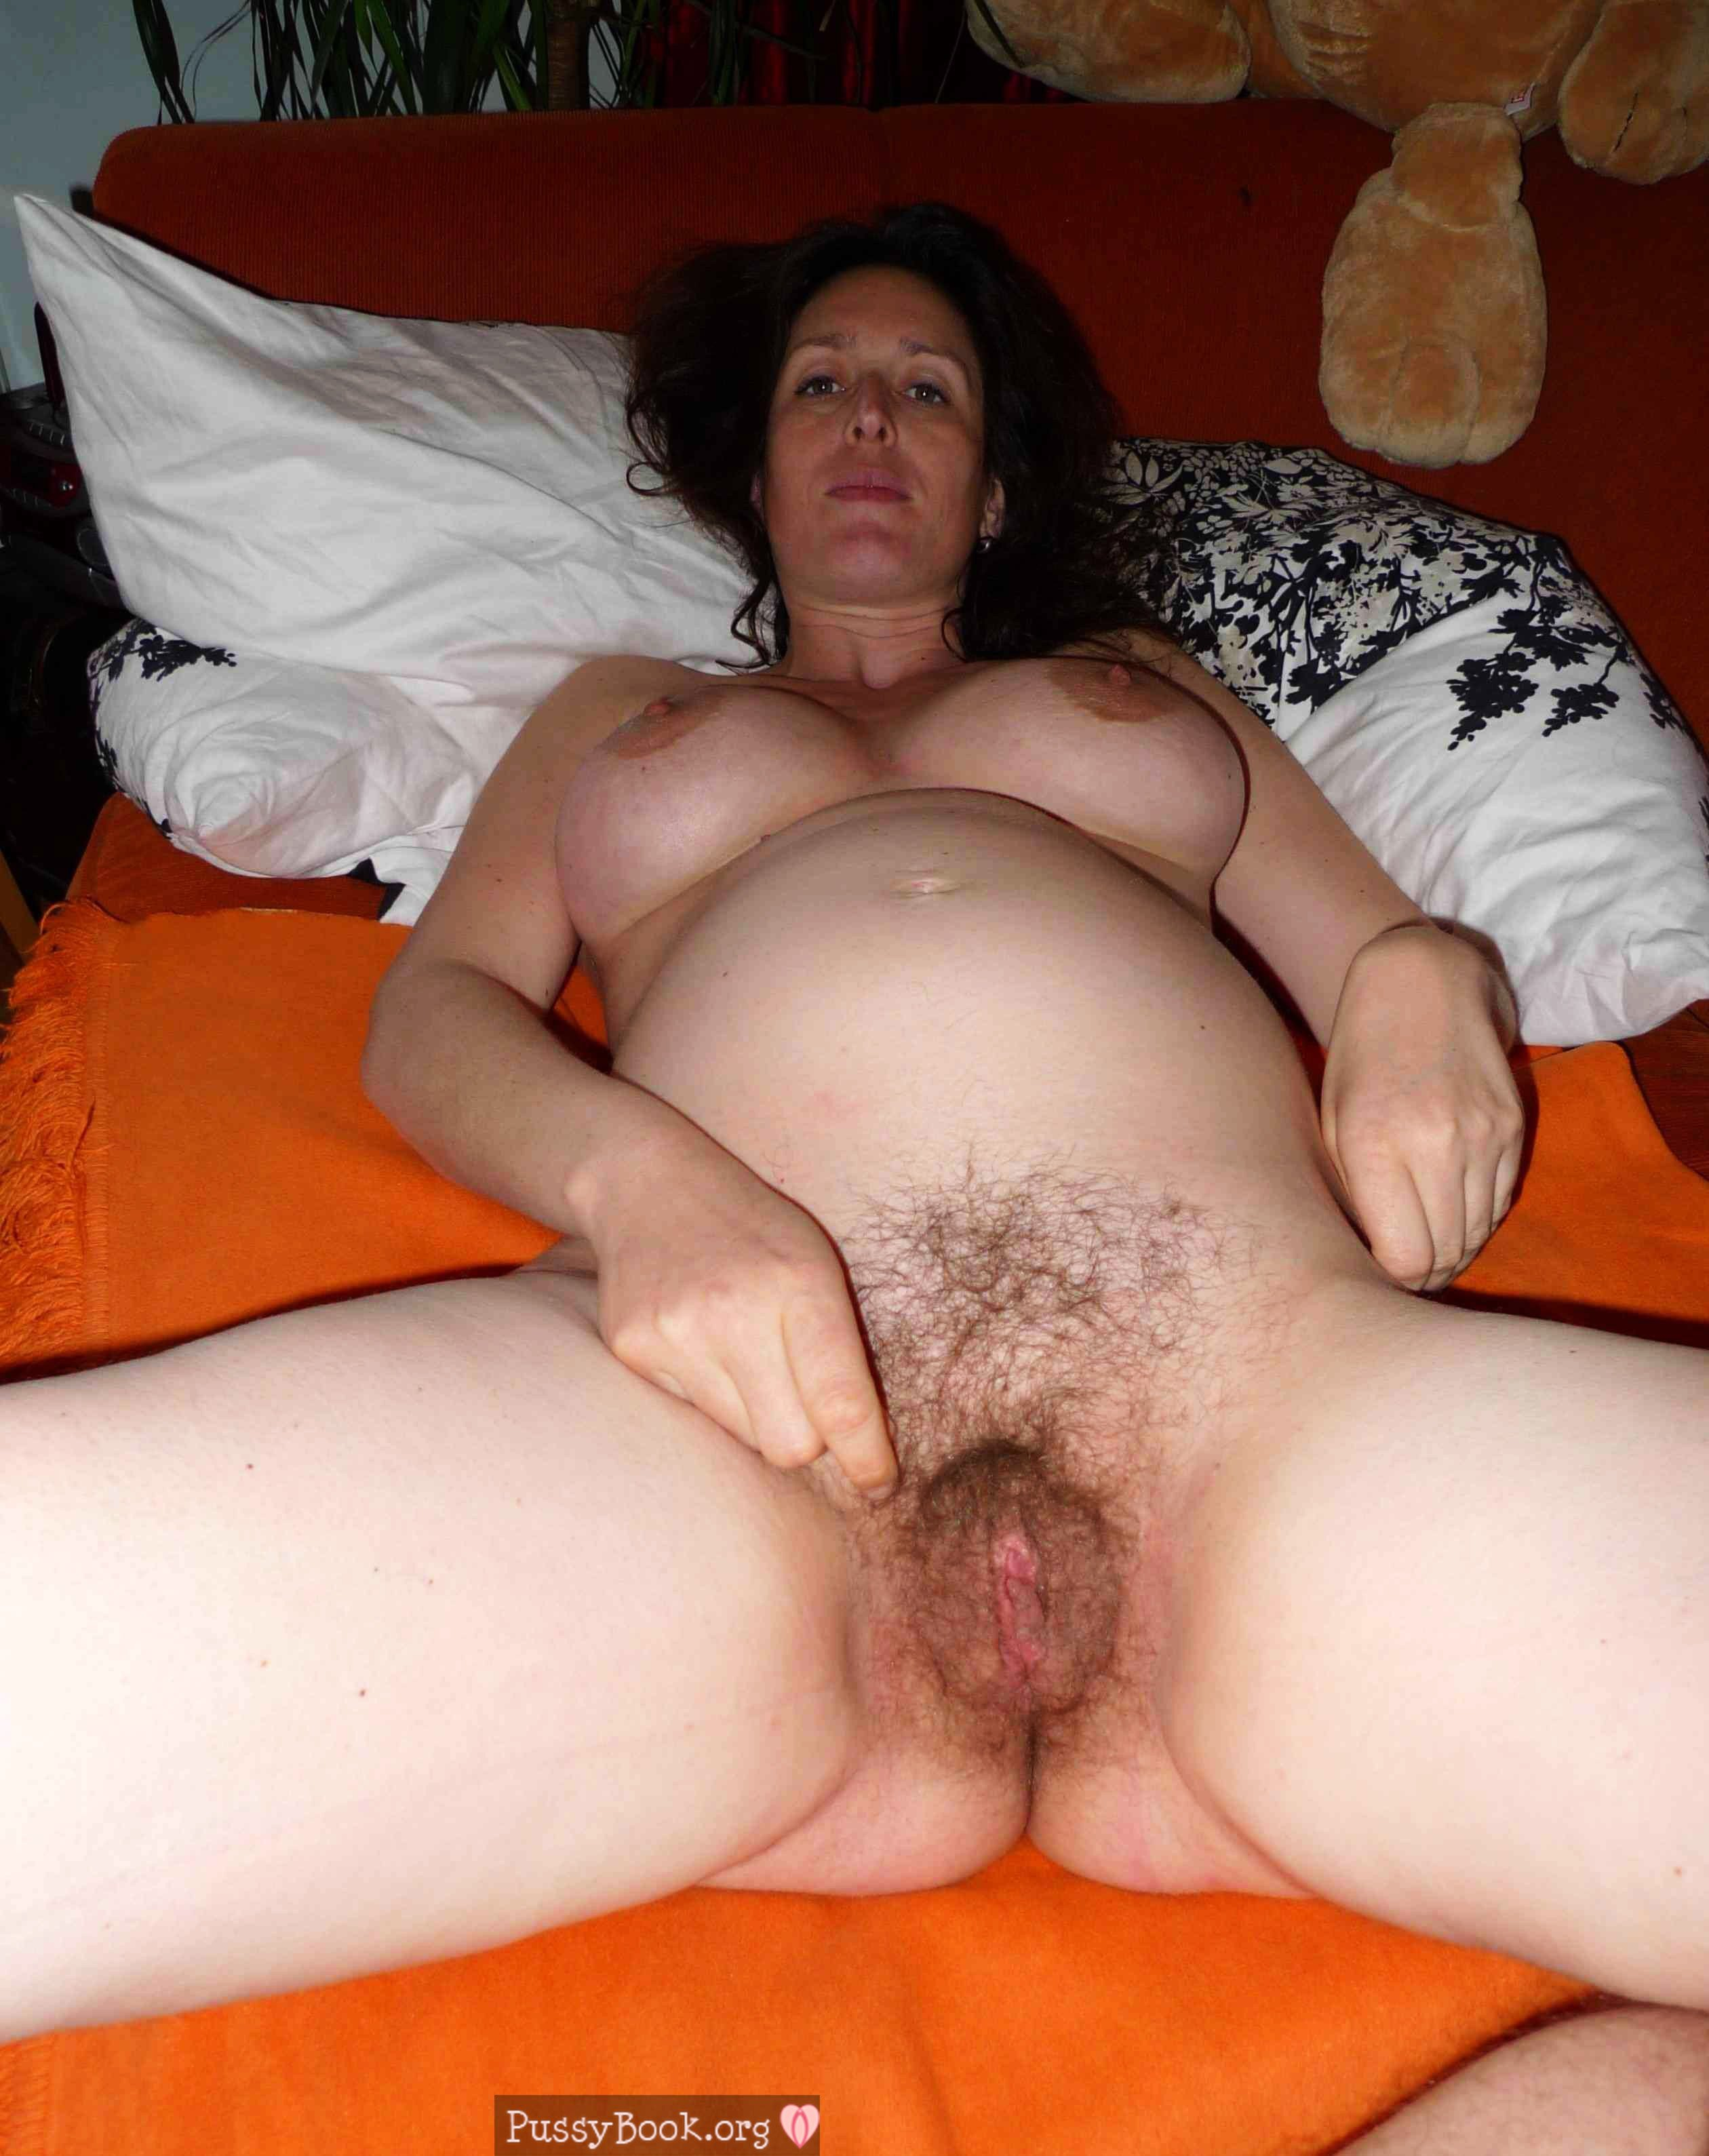 Pregnant hairy women naked topic